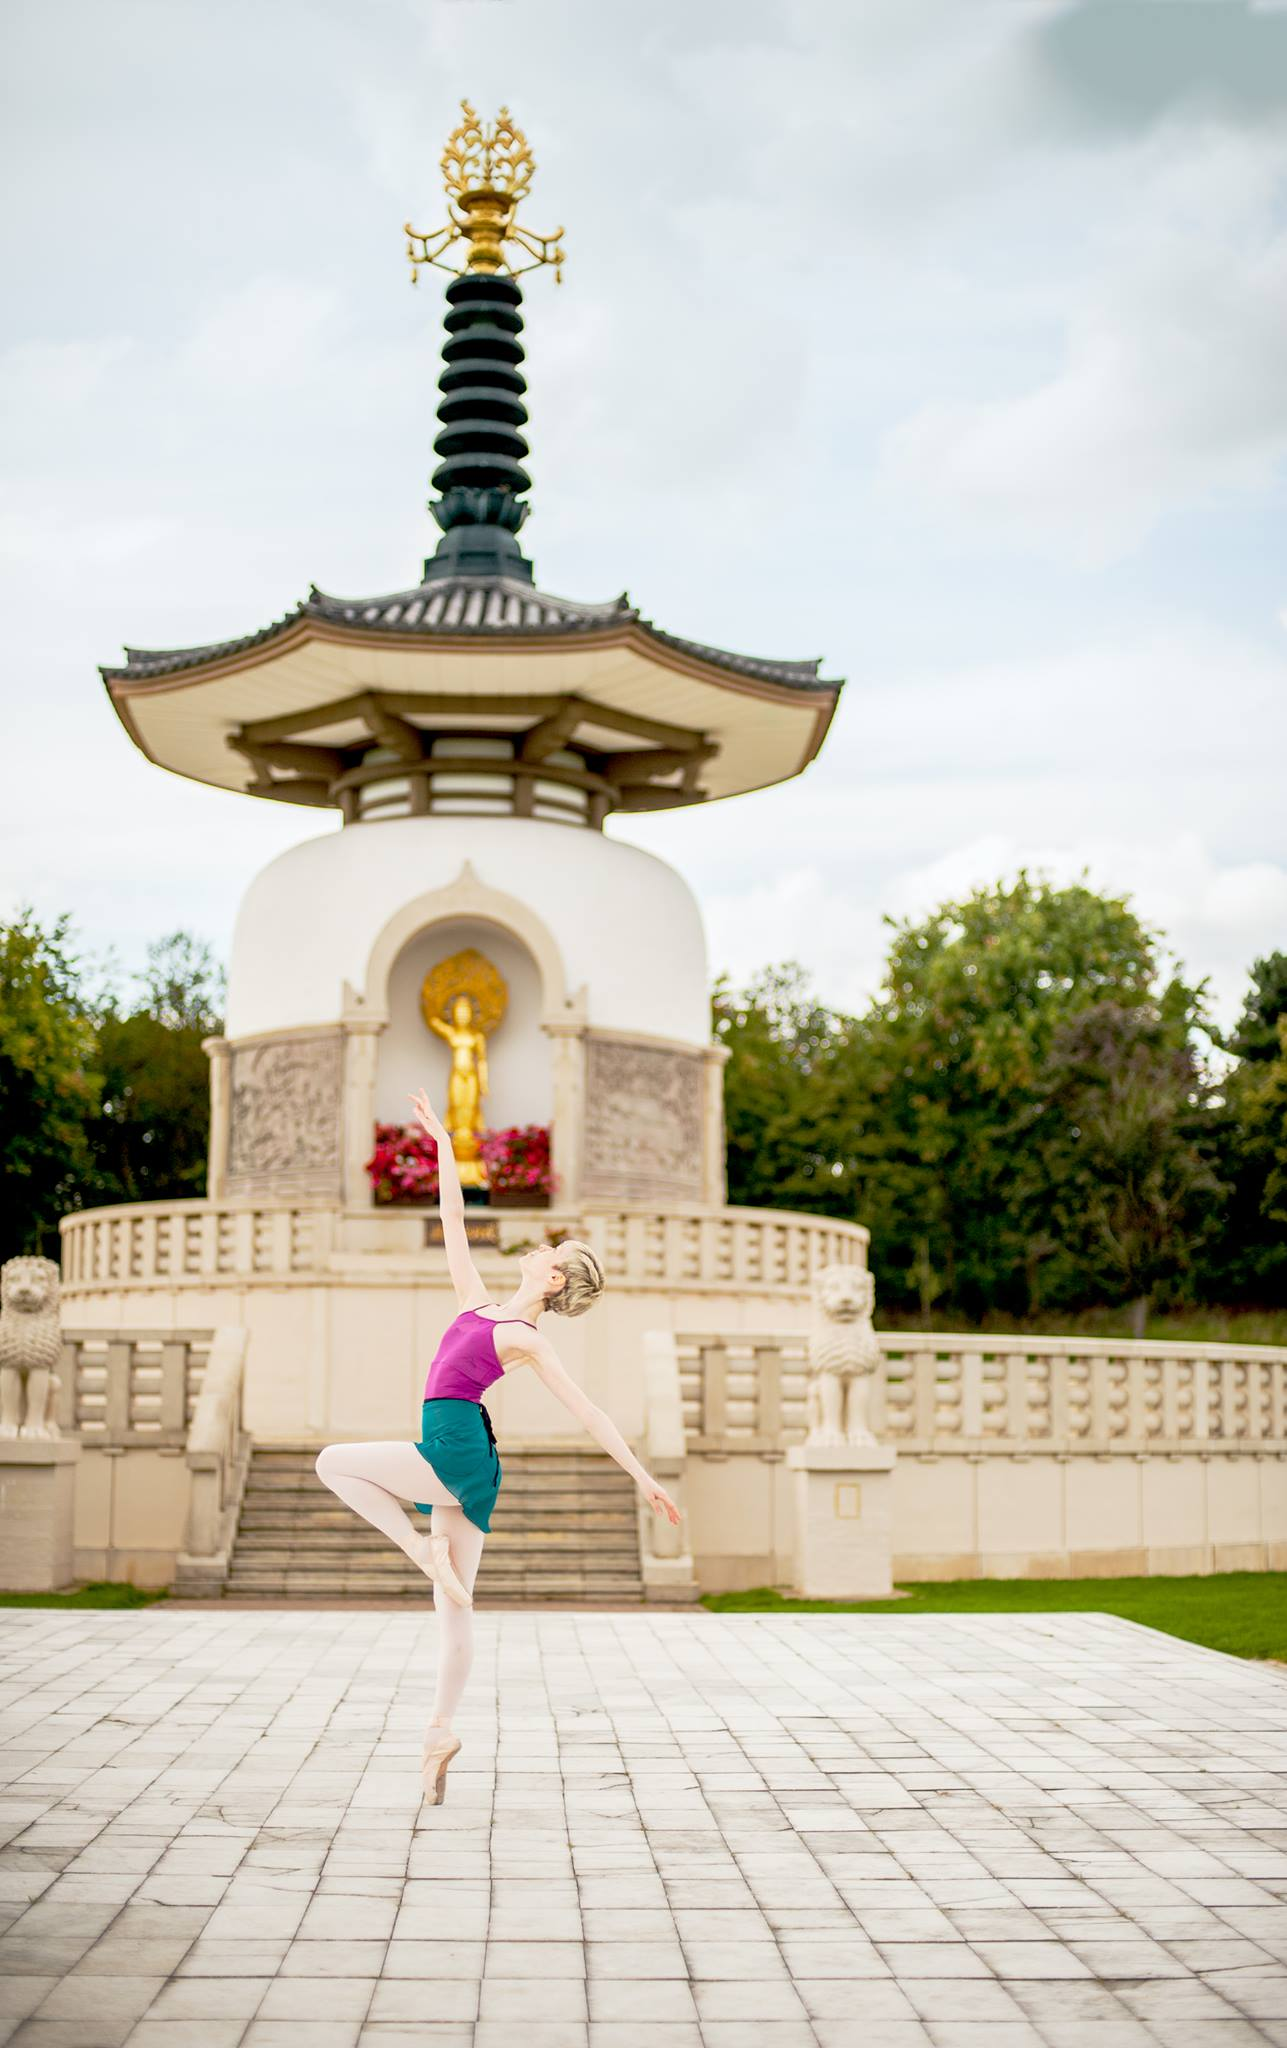 Georgina Butler. International Dance Day 2019. Dance and Spirituality. Georgina Butler wearing a pink leotard and turquoise skirt, dancing en pointe in front a Peace Pagoda.